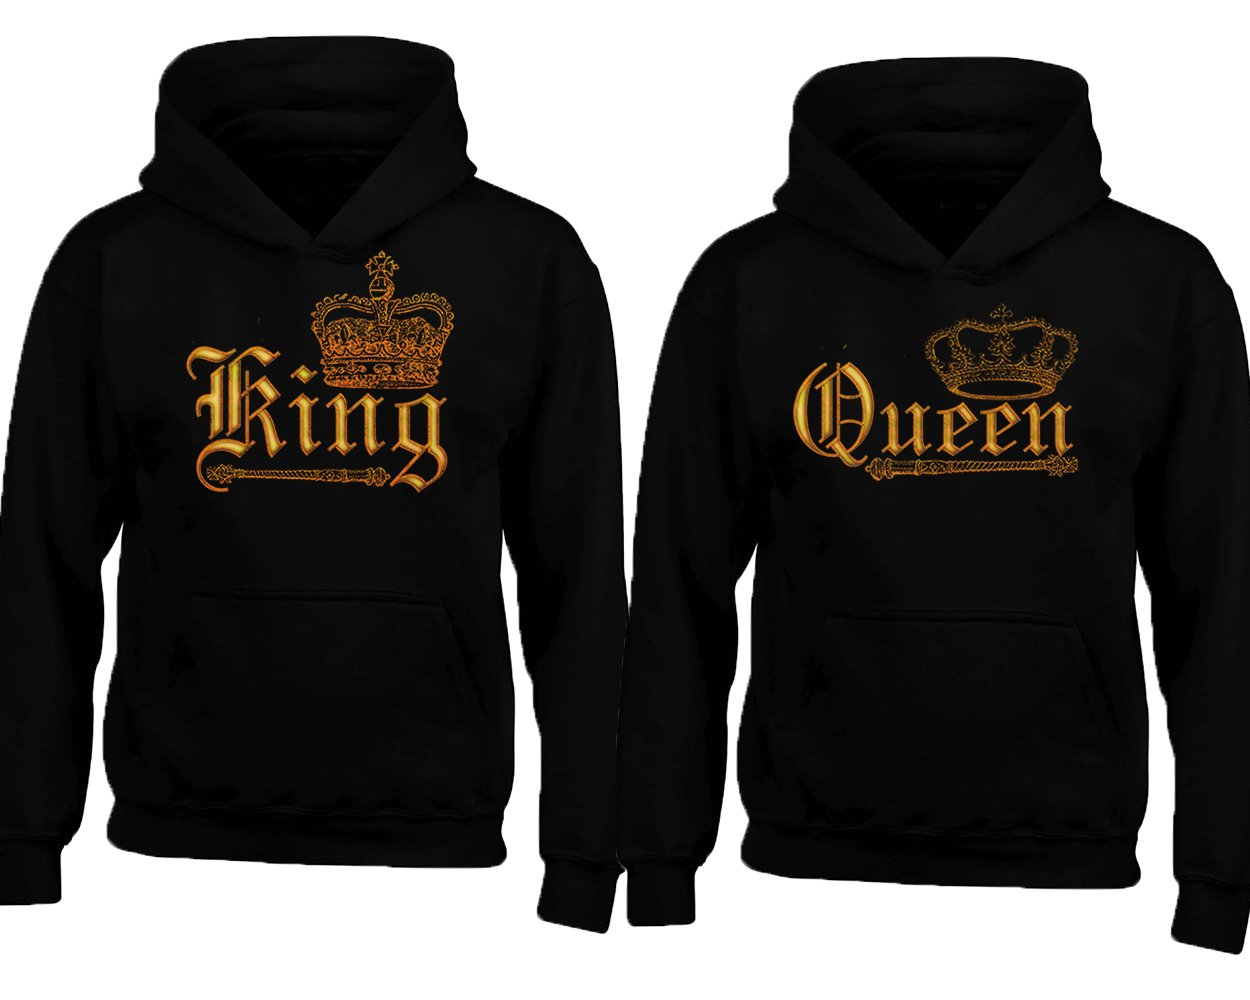 Matching Couple Hoodies King and Queen | His and Hers Sweaters